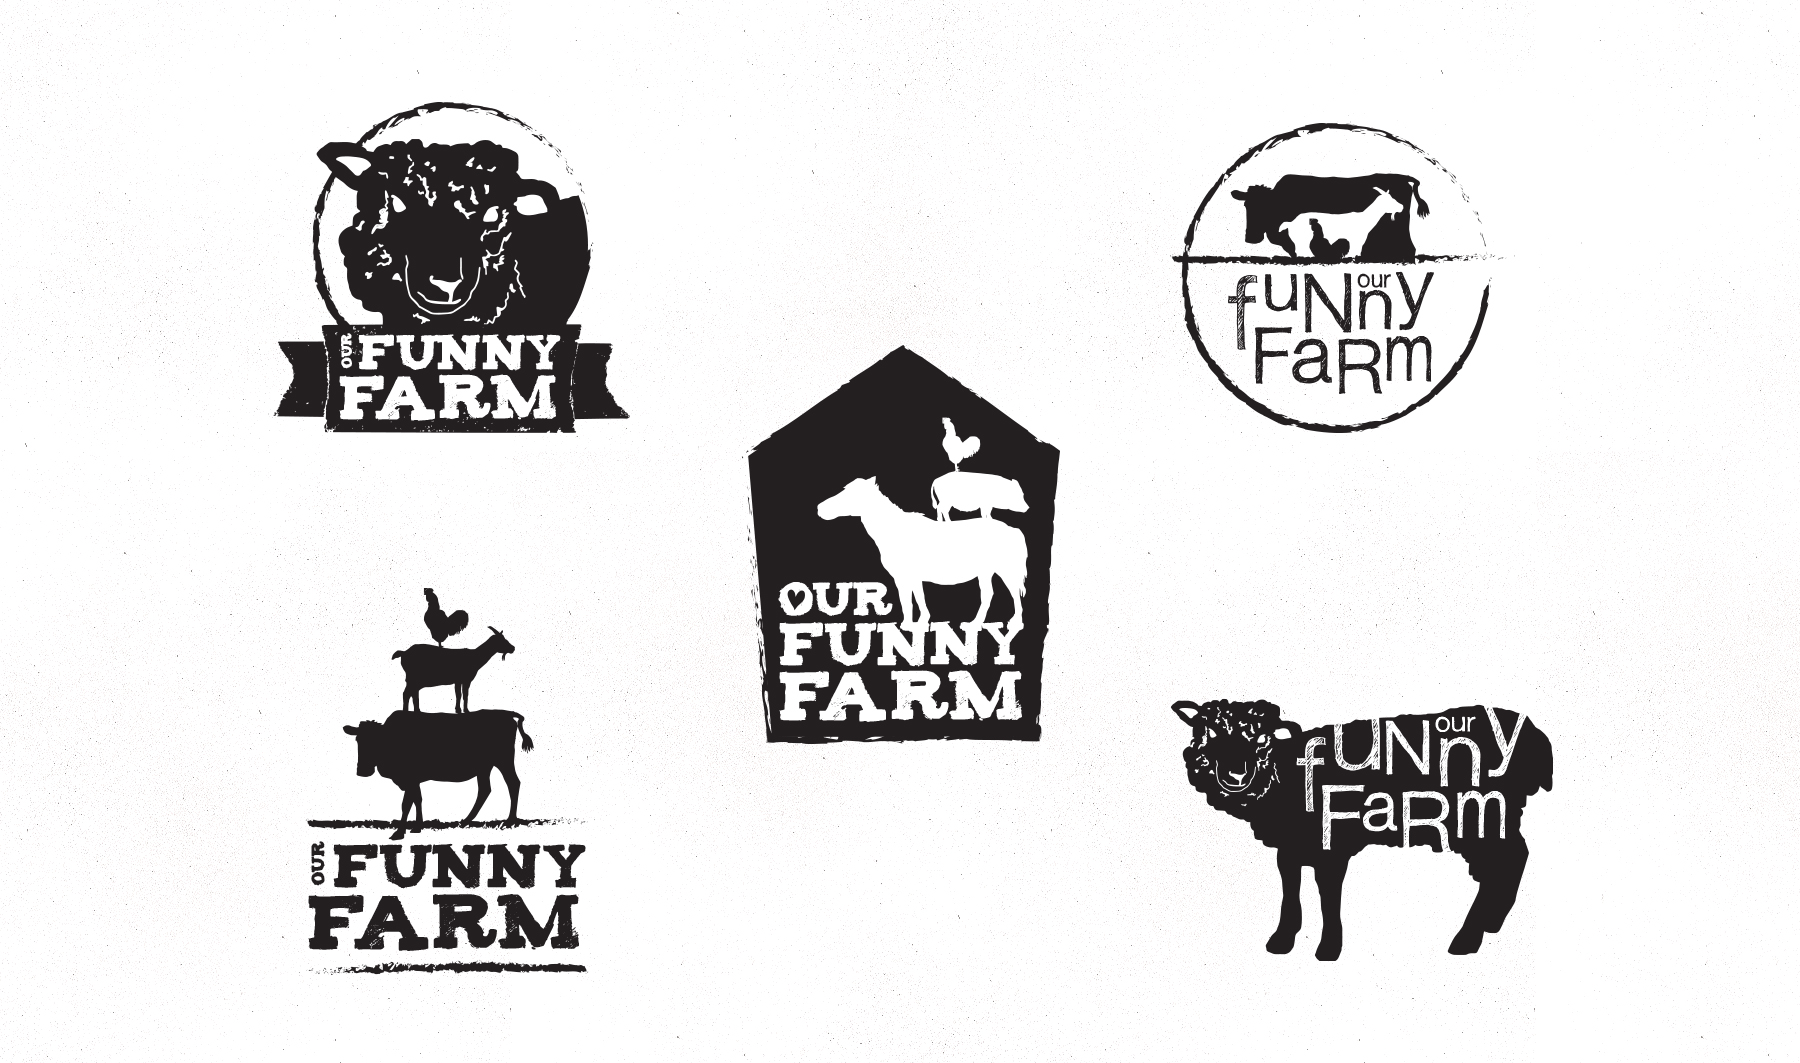 Our Funny Farm comps